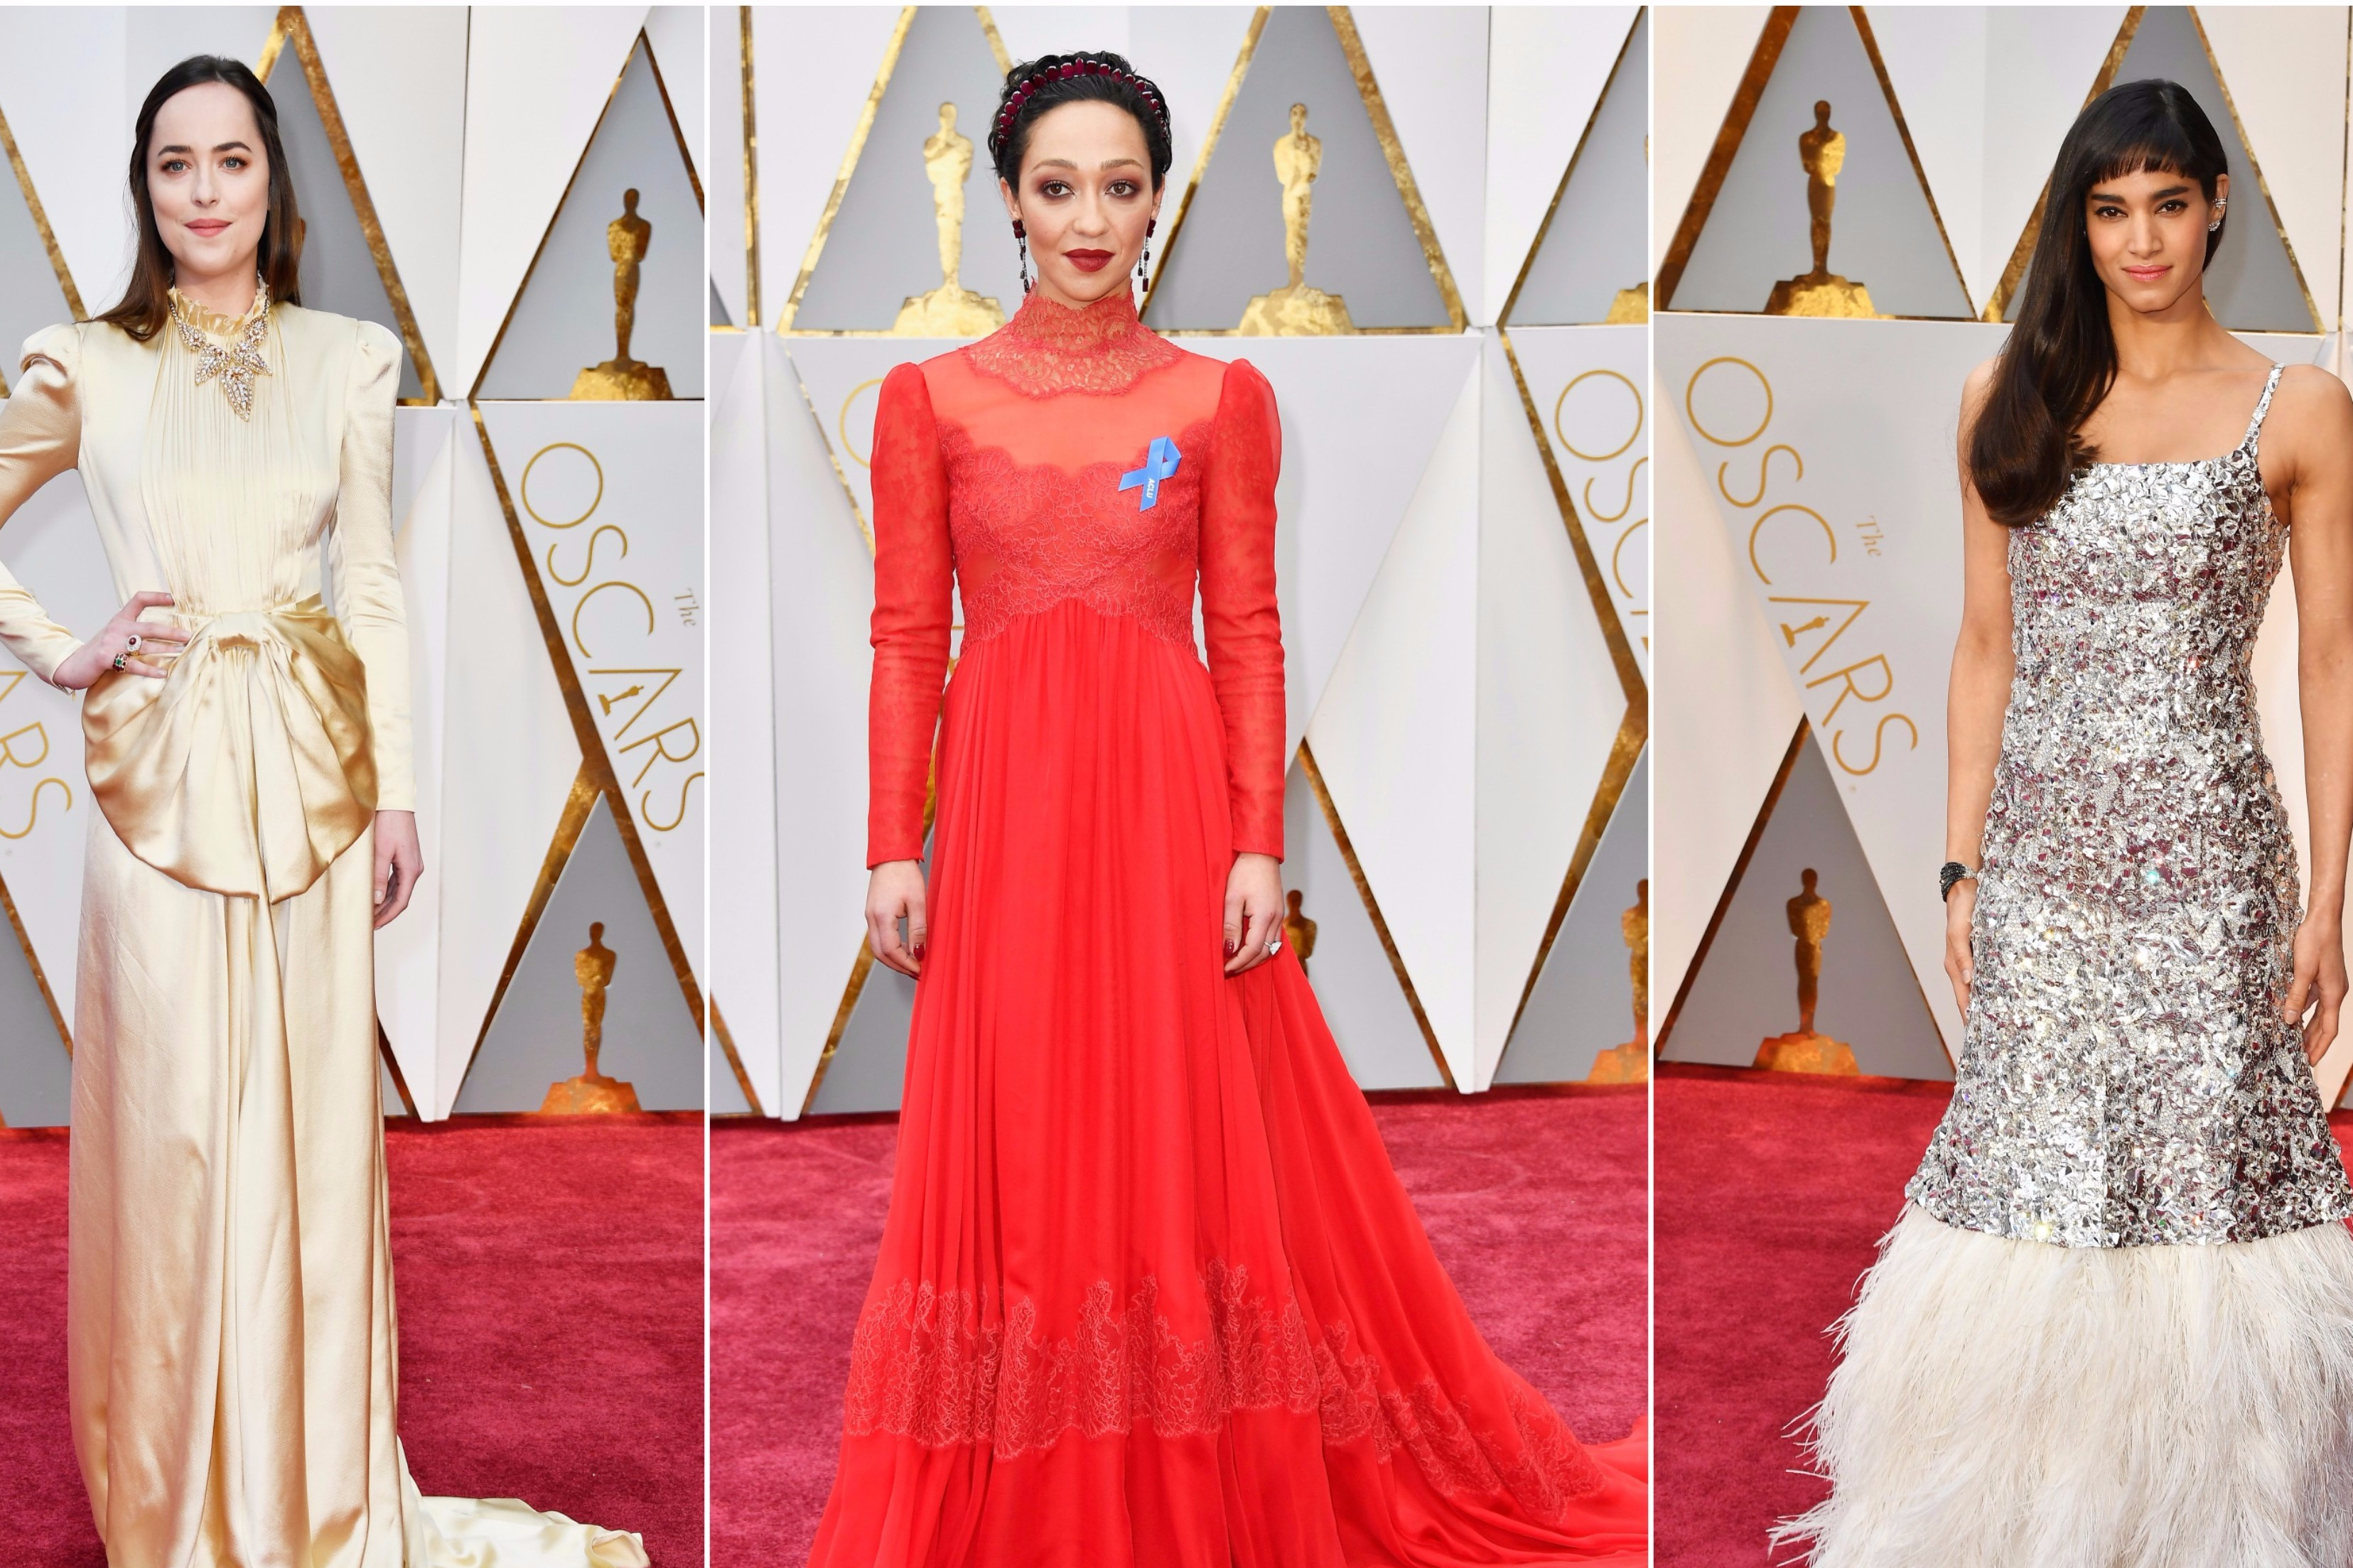 4 Trends We Love at Oscars 2017